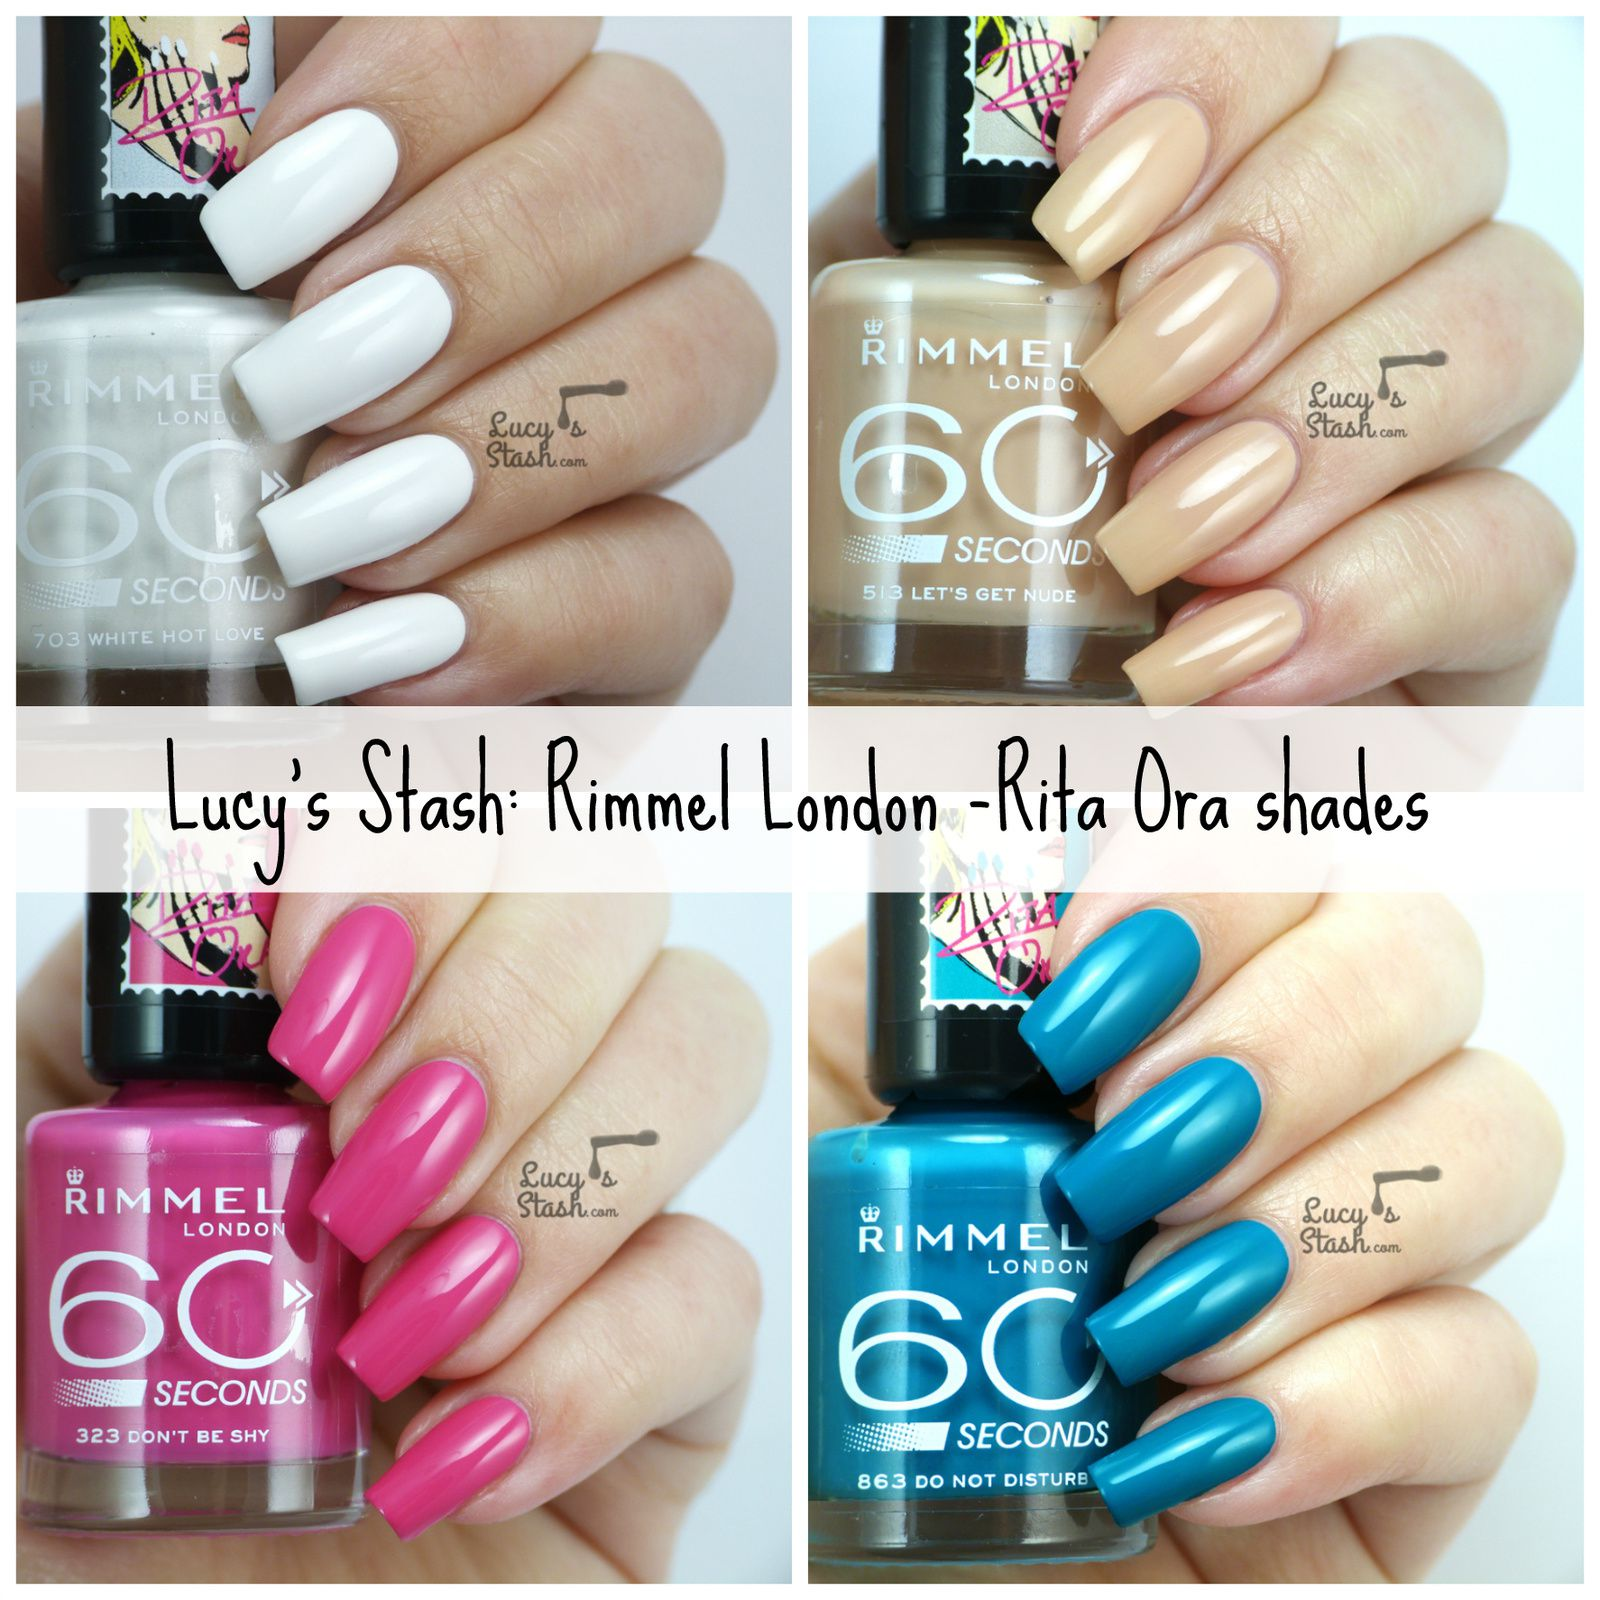 Rimmel London Rita Ora Polishes